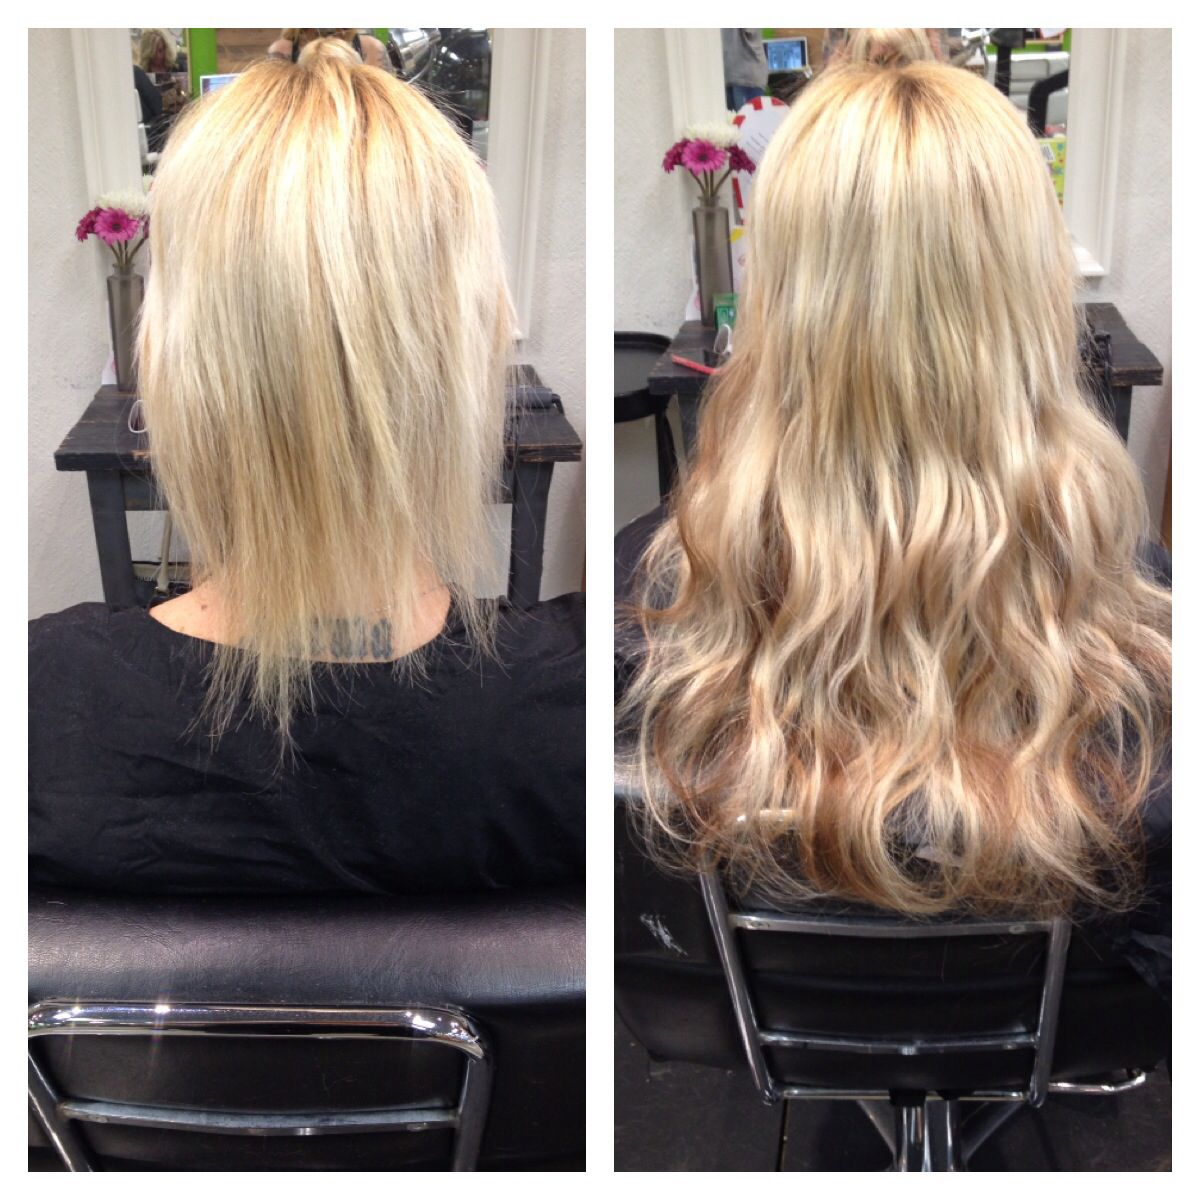 Full Head Of Cinderella Hair Extensions Keratin Glue Tips In Light Blonde And Two Shades Caramel Lowlights